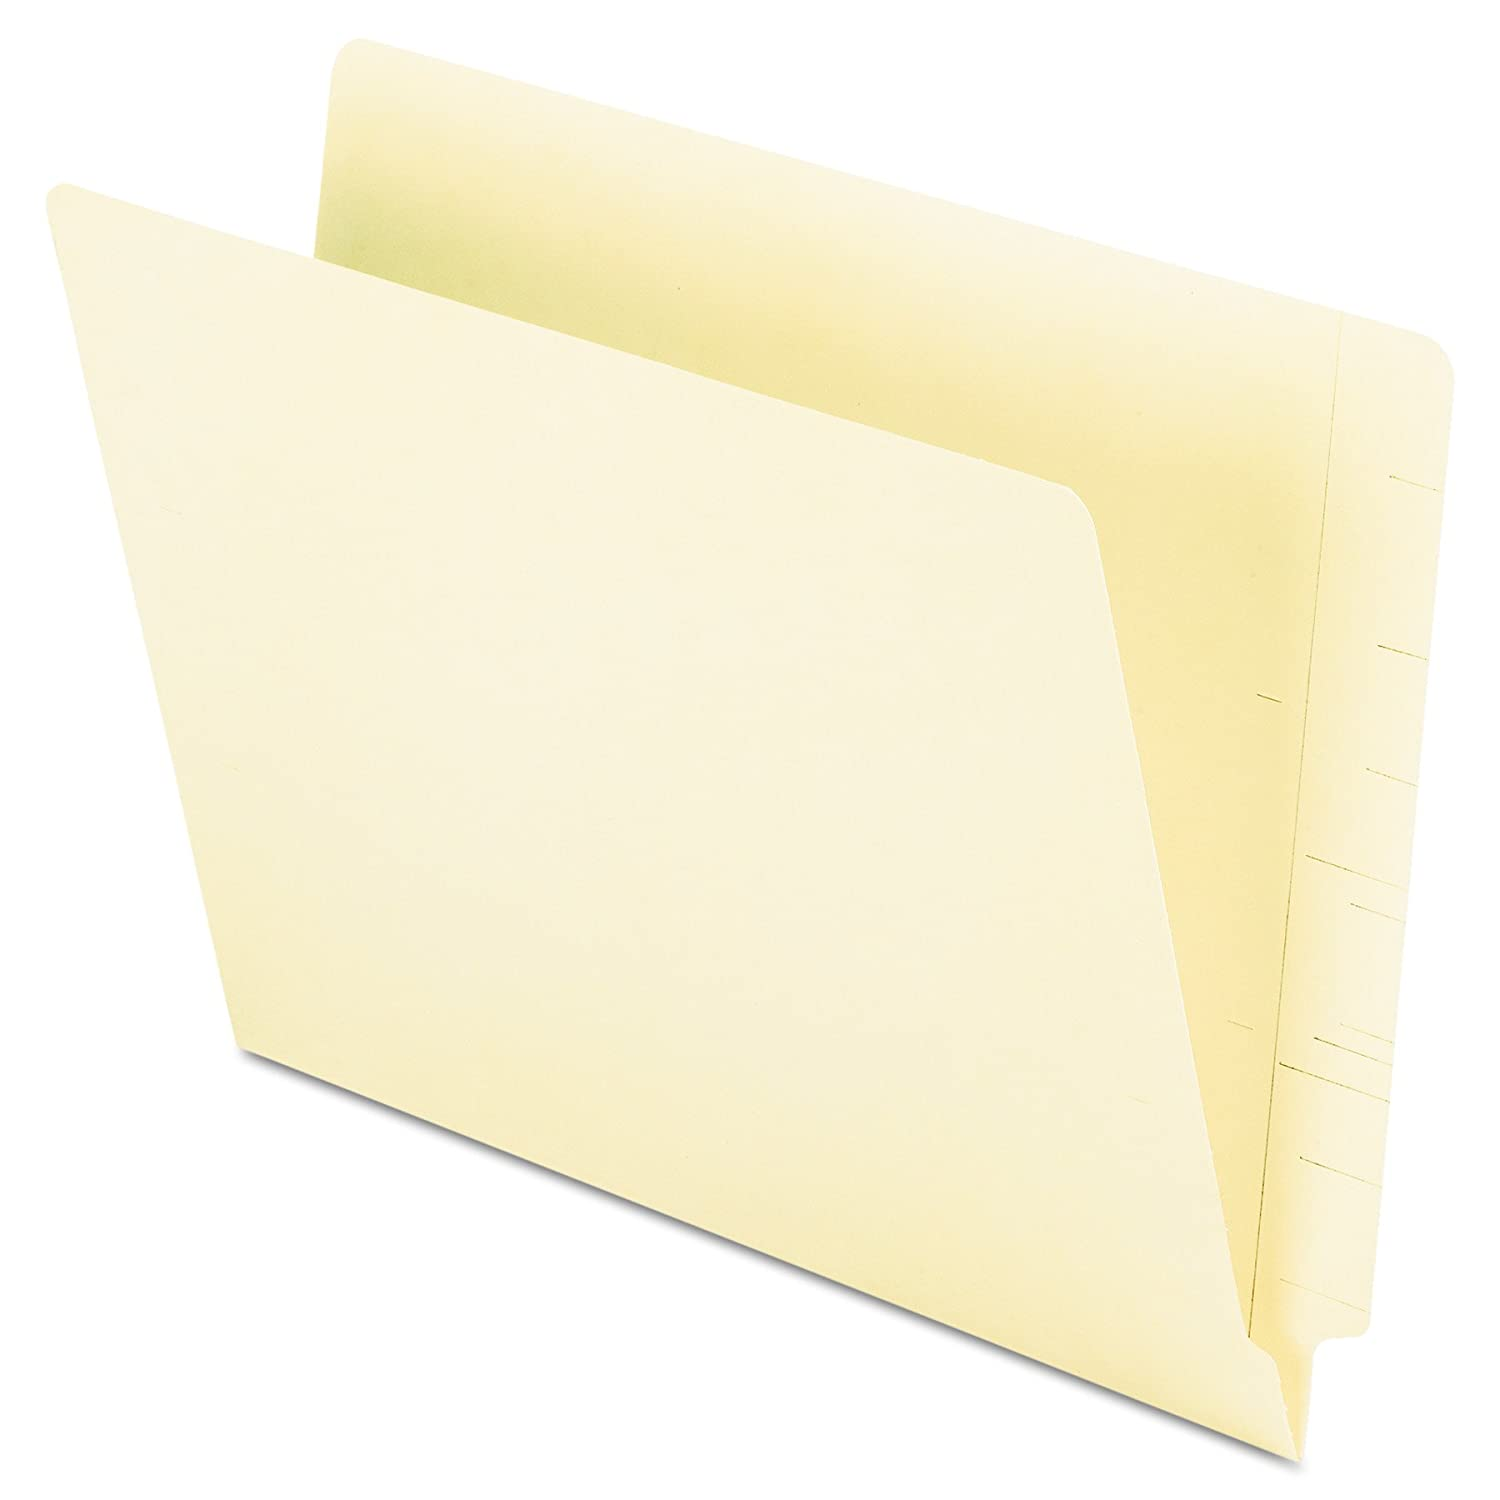 Pendaflex End Tab Folders, Full Tab, Letter Size, Manila, 100 per Box (H110D) Esselte